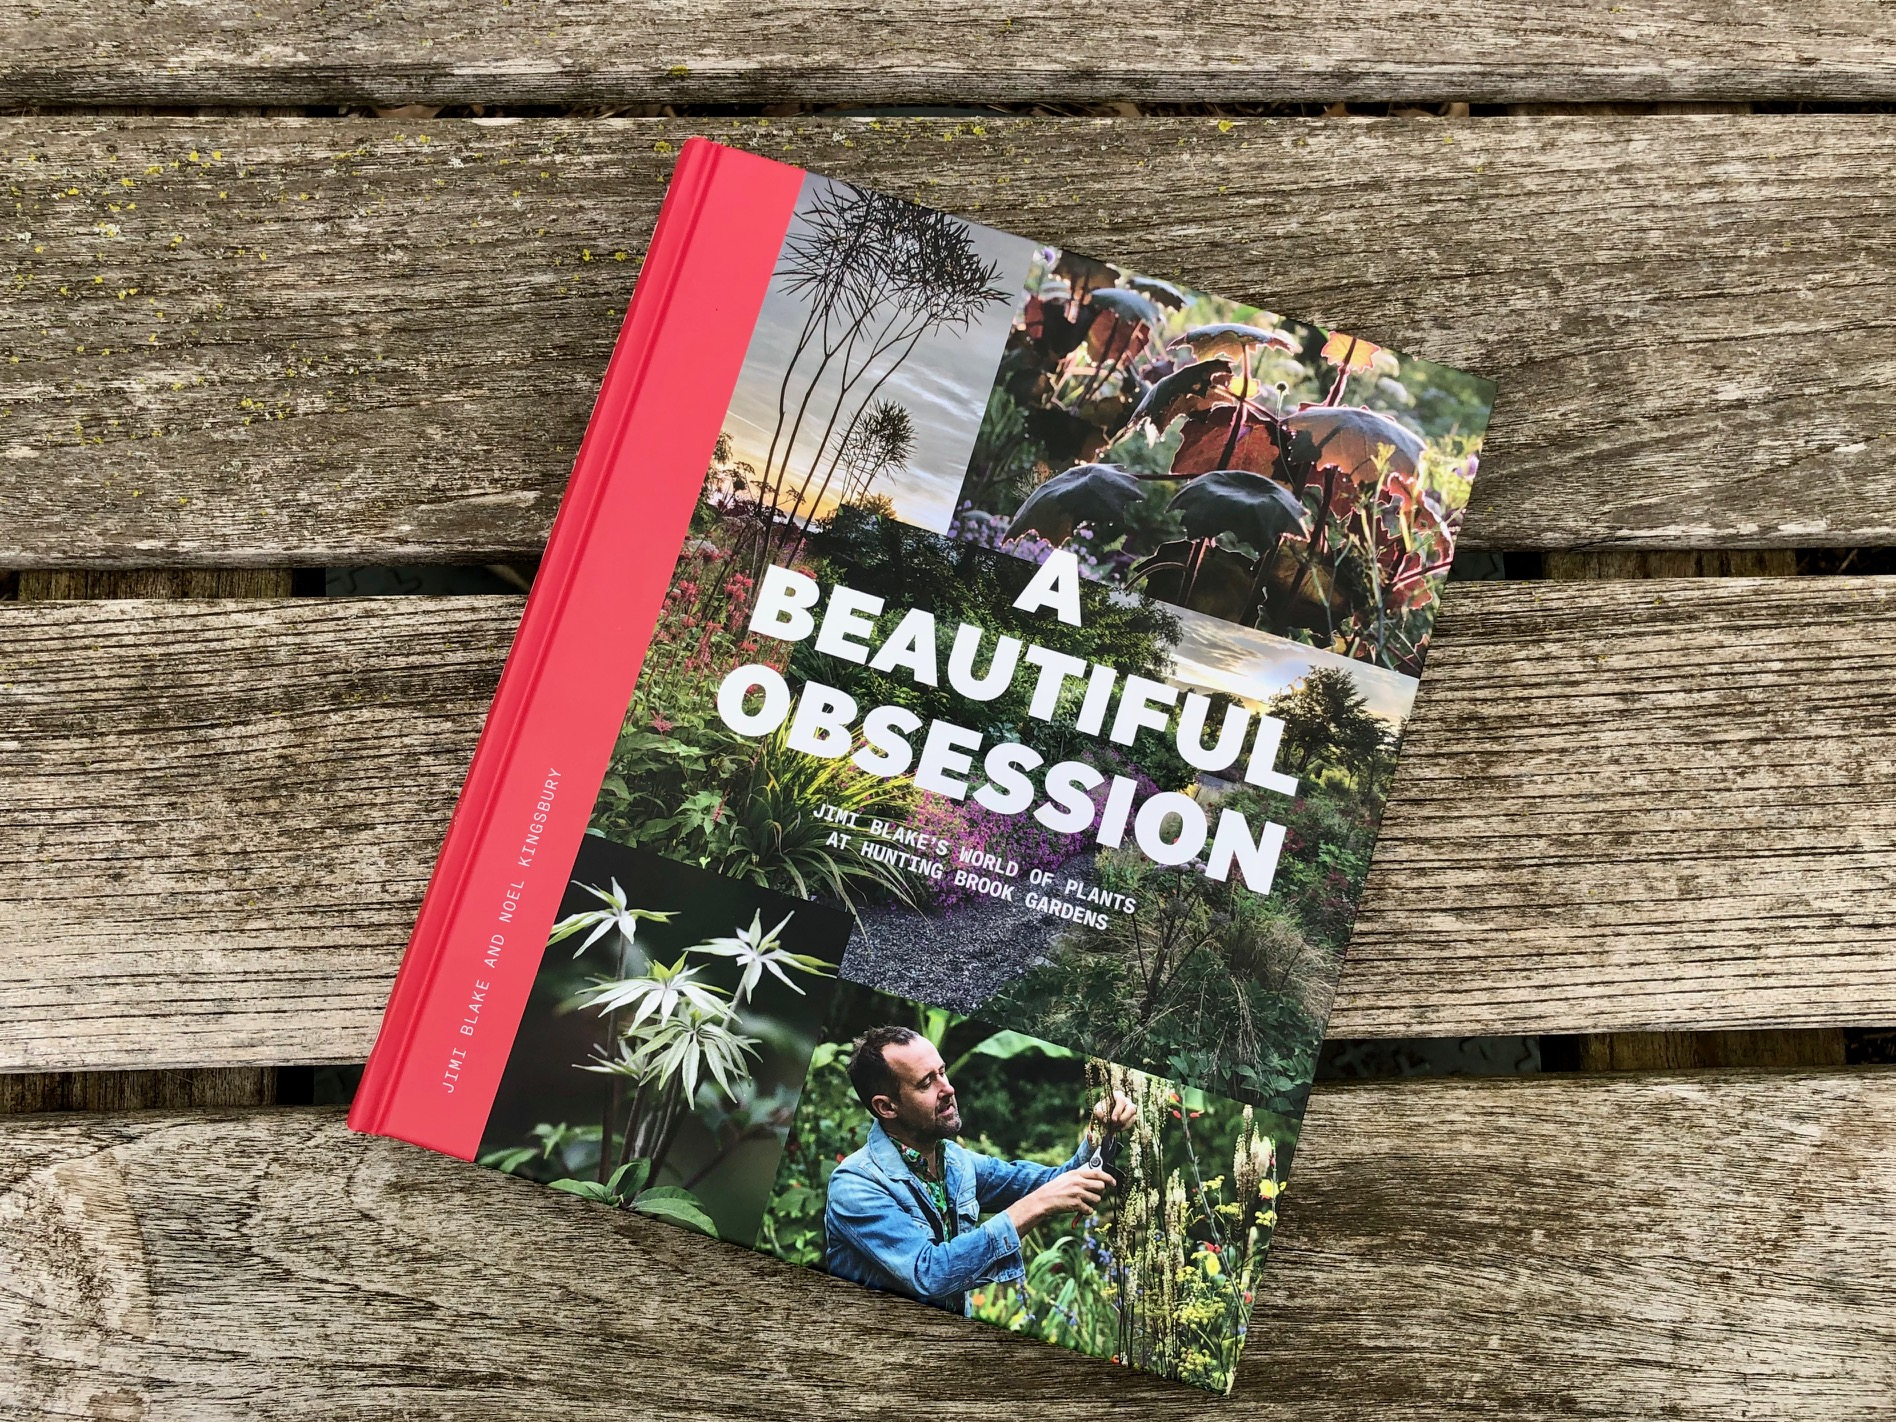 A Beautiful Obsession by Jimi Blake and Noel KingsburySpring Reading Book List - Thinking Outside the Boxwood by Nick McCullough